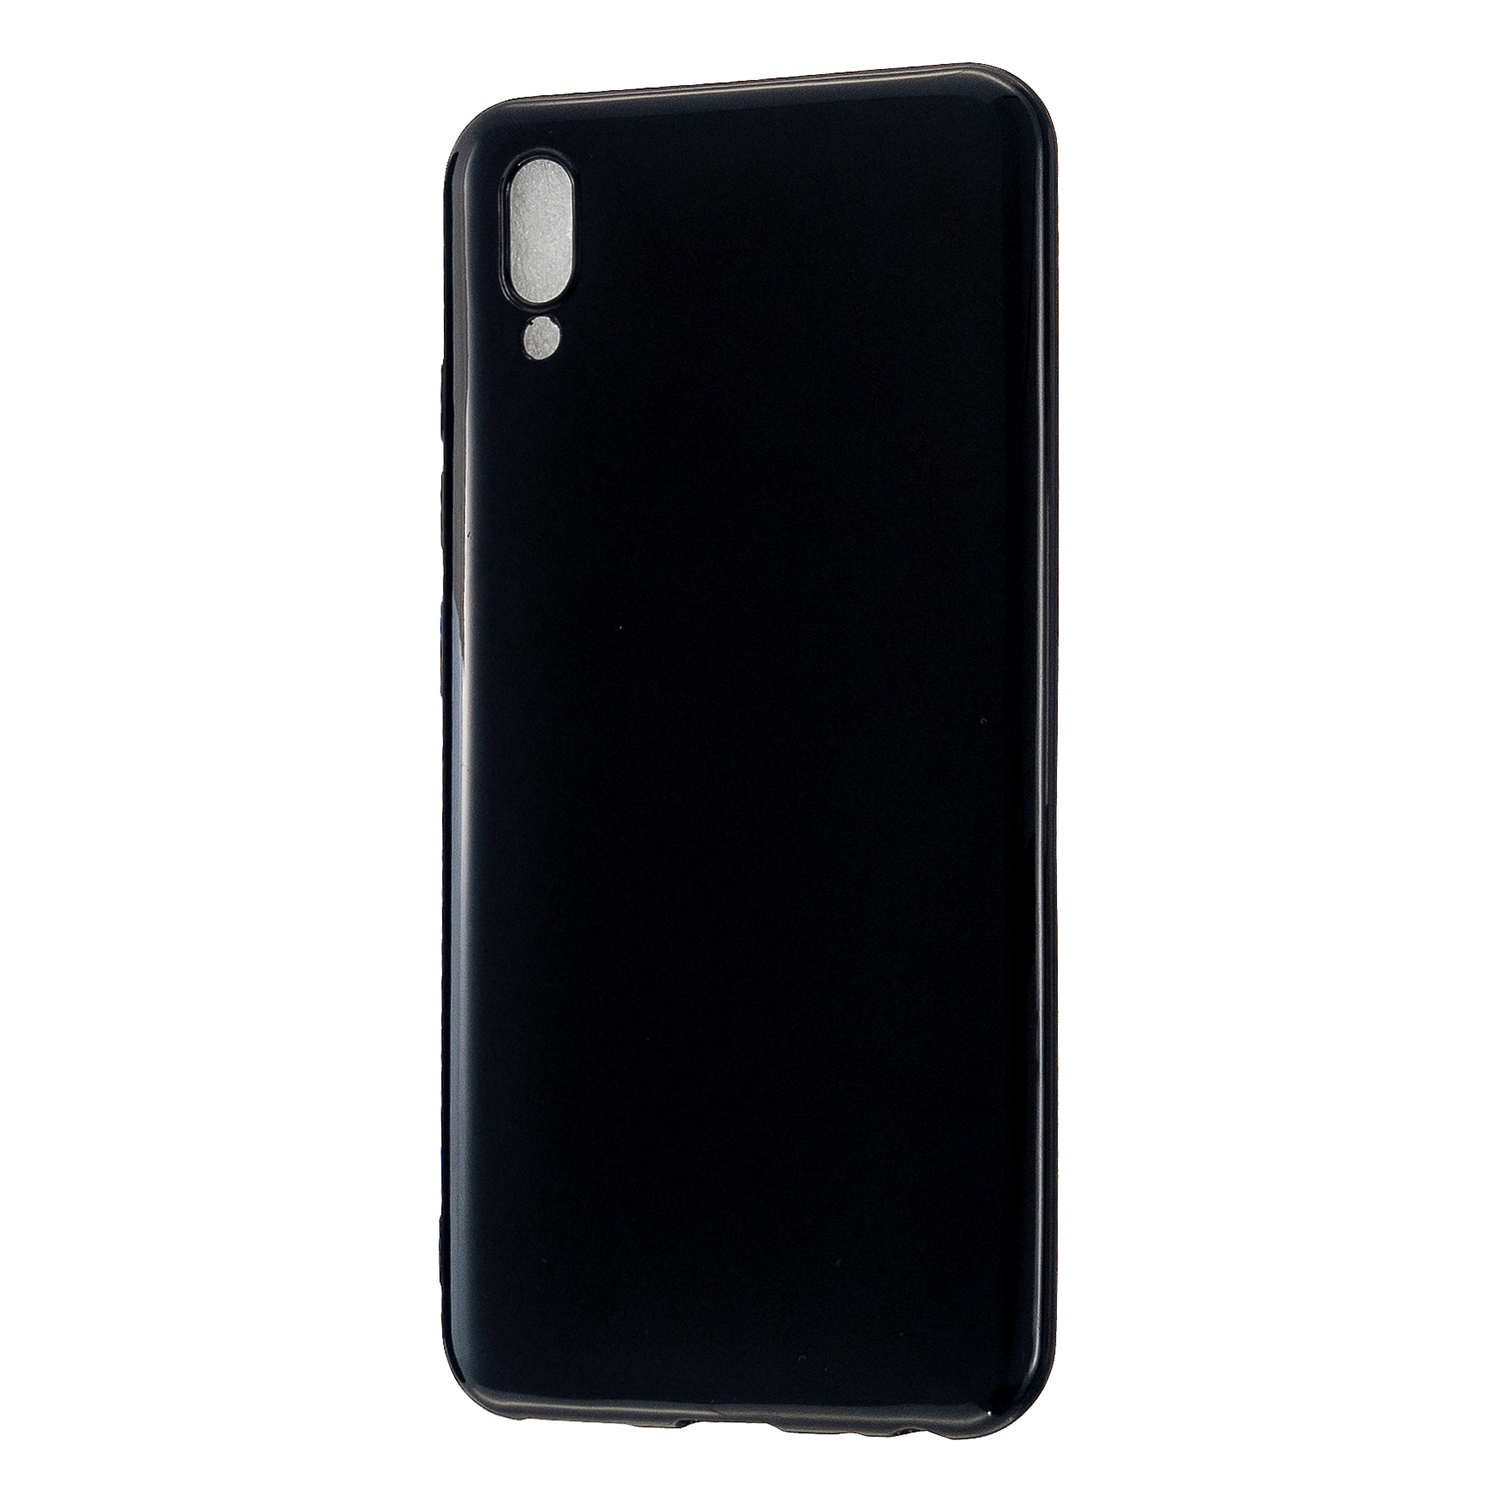 For VIVO Y93/Y95 Mobile Phone Case Glossy Finish Lightweight TPU Cellphone Cover Anti-scratch Overal Protection Shell Bright black